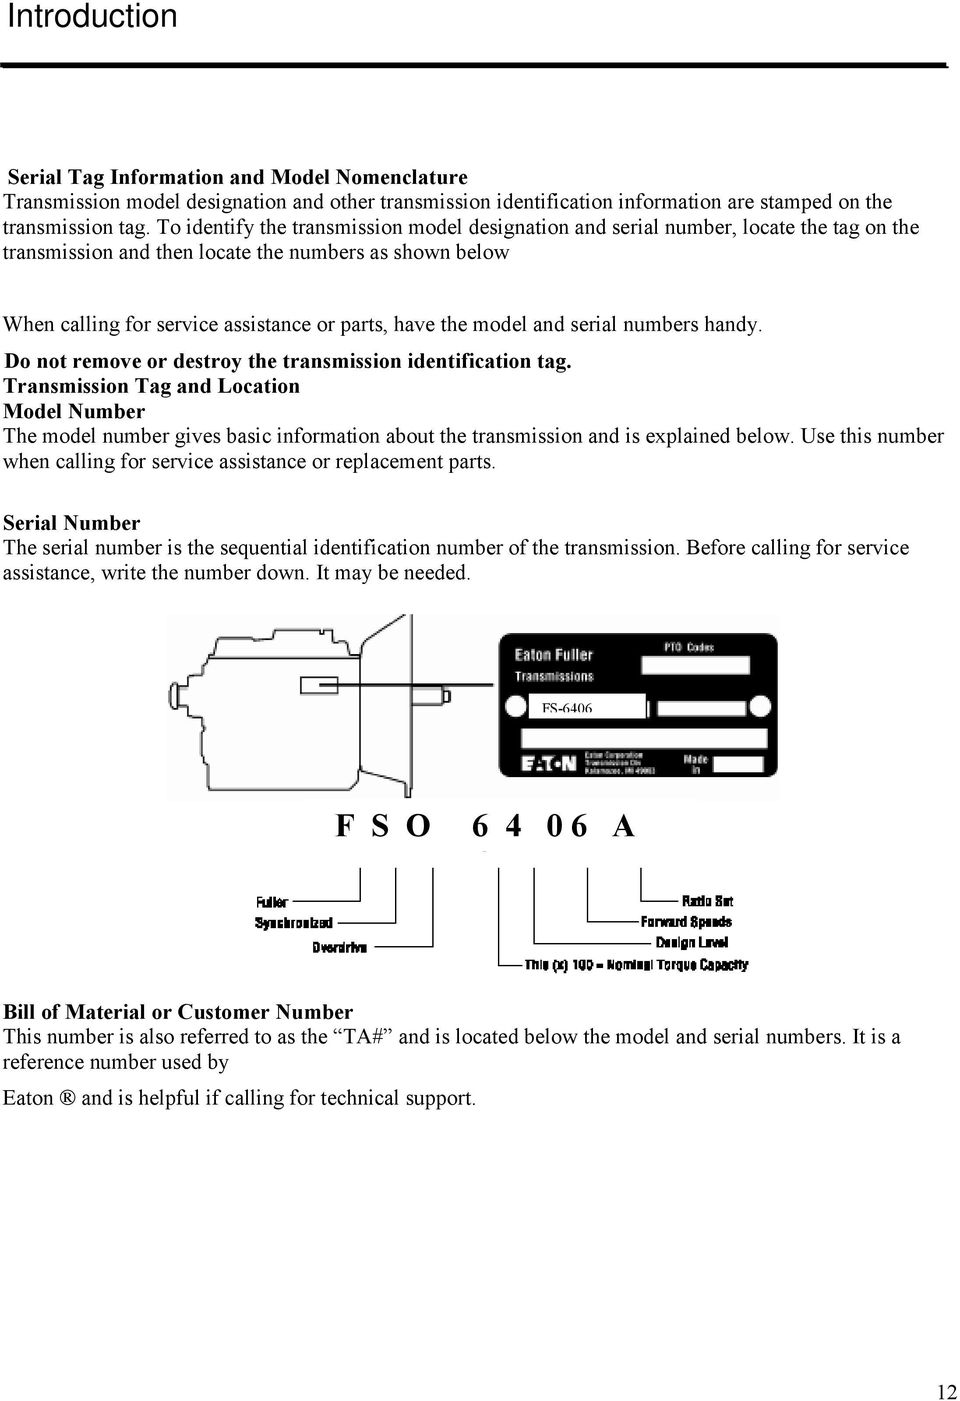 6-Speed Synchromesh Transmission Service Manual  (FS-6406 Series) - PDF